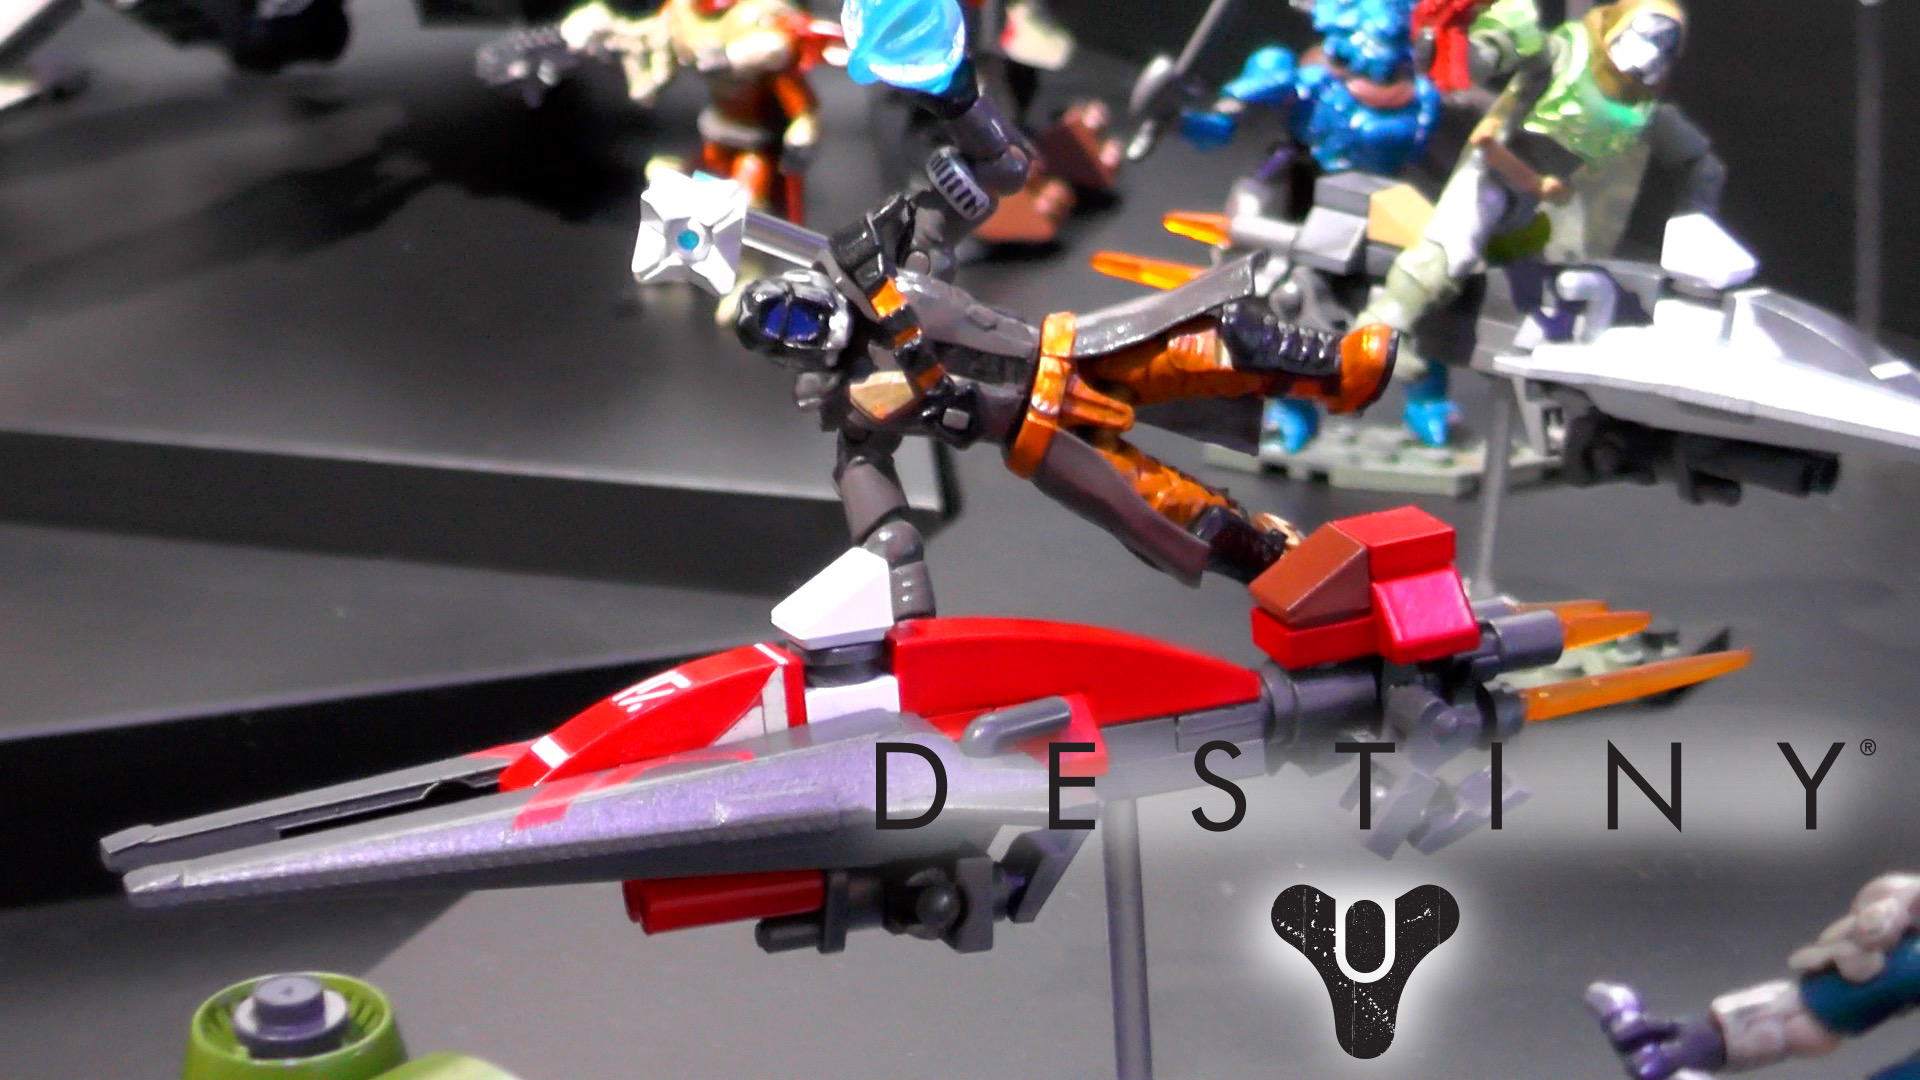 Call of Duty, Destiny and Halo get the brick treatment from Mega